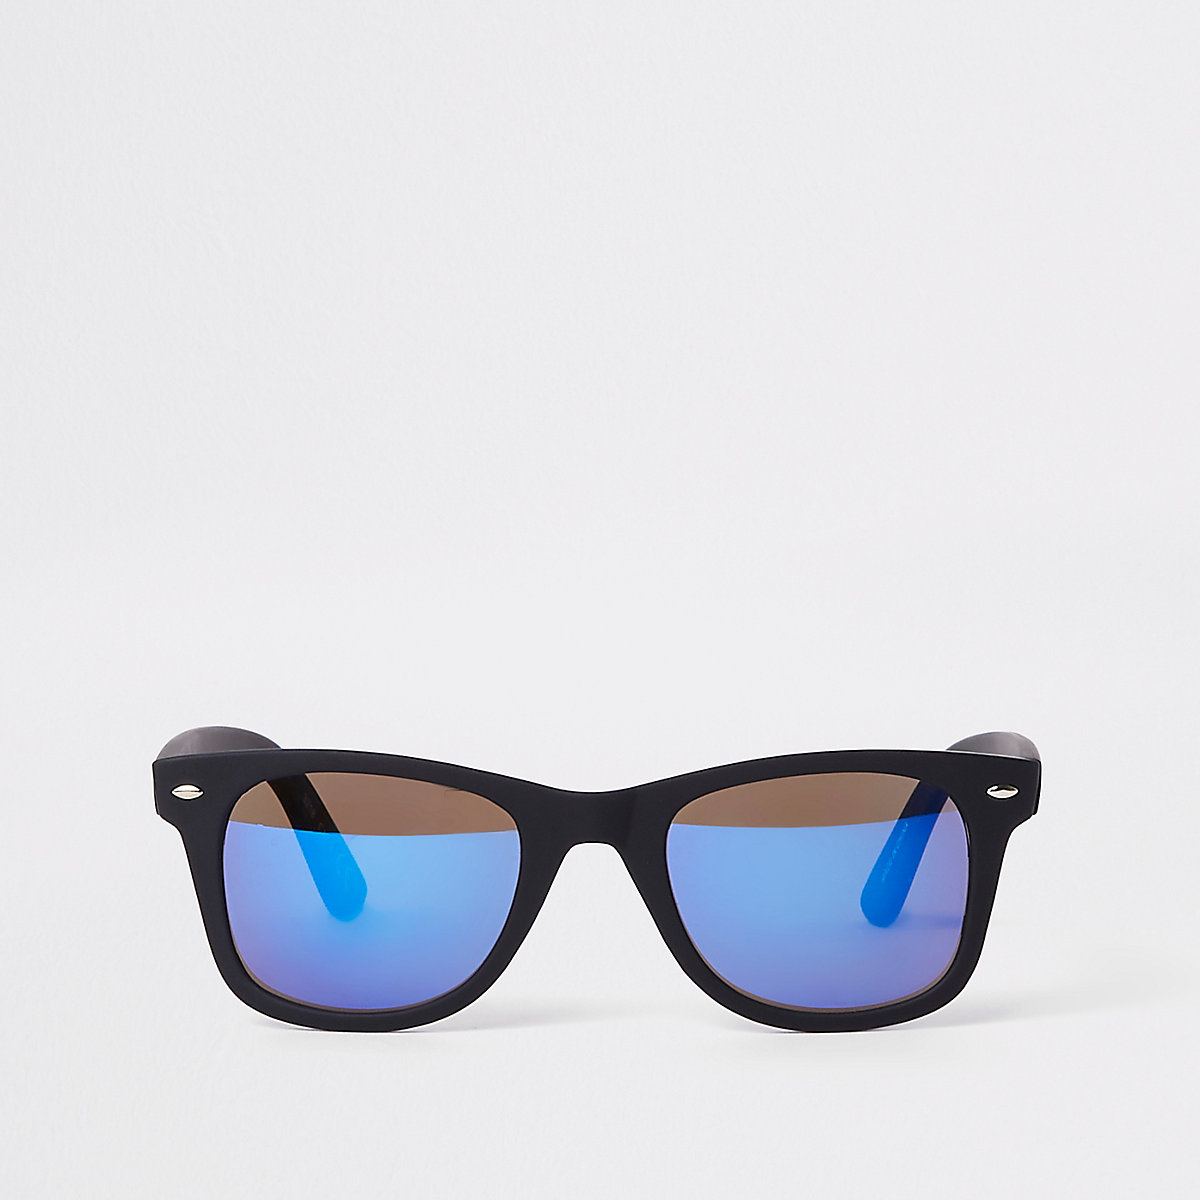 Black mirror lens retro square sunglasses